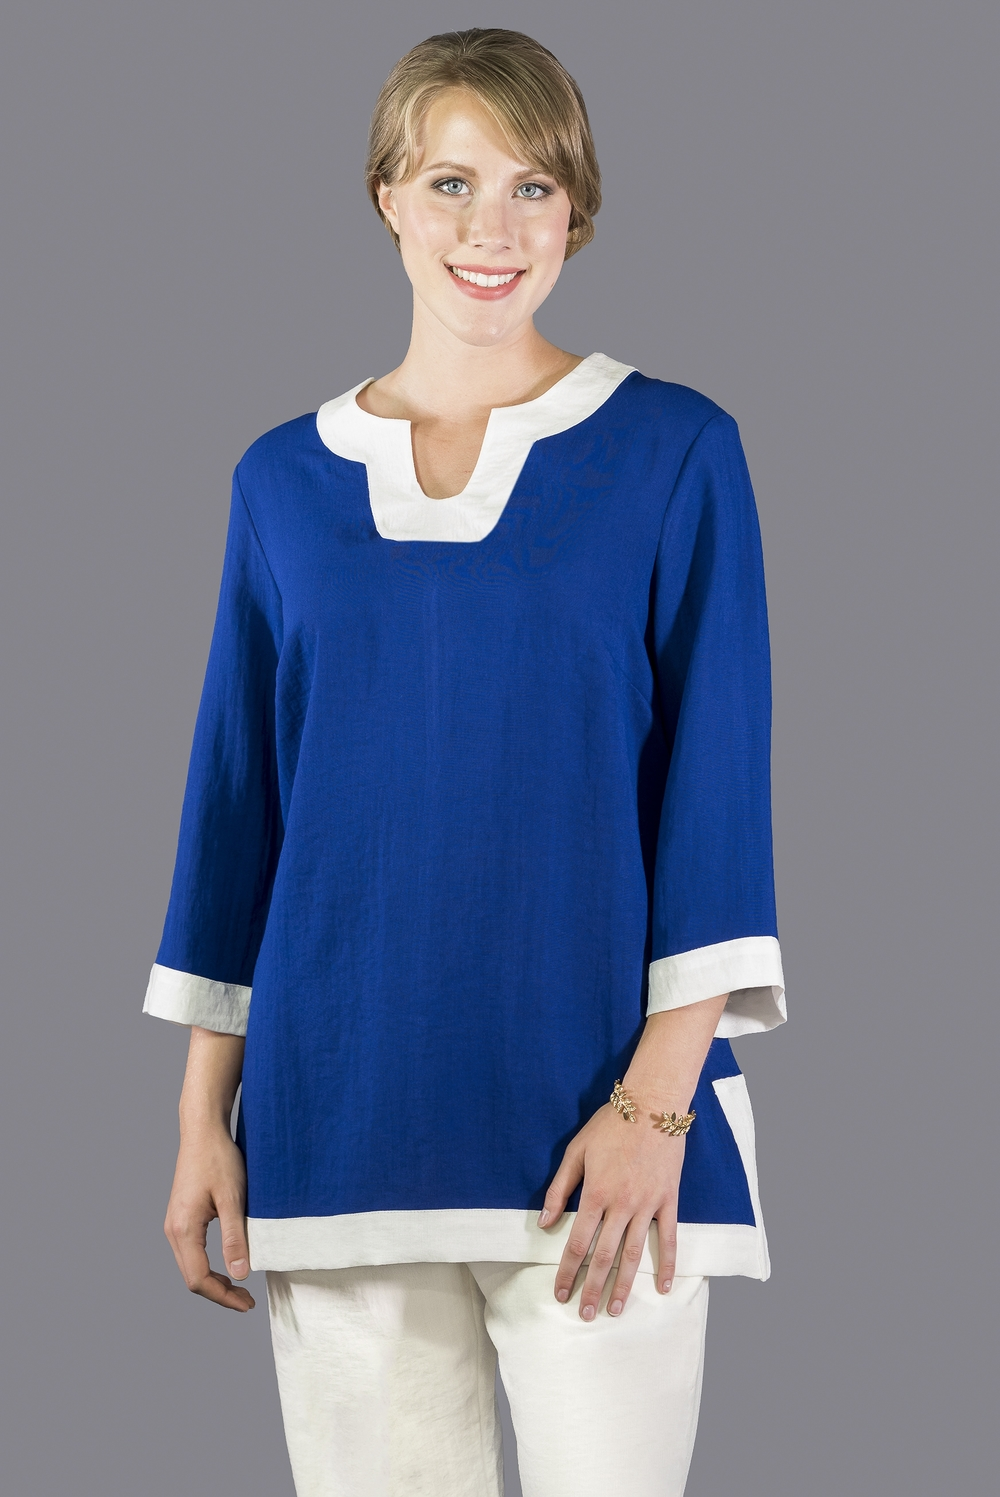 AA174 - Bella Tunic    CL3096 - Midnight